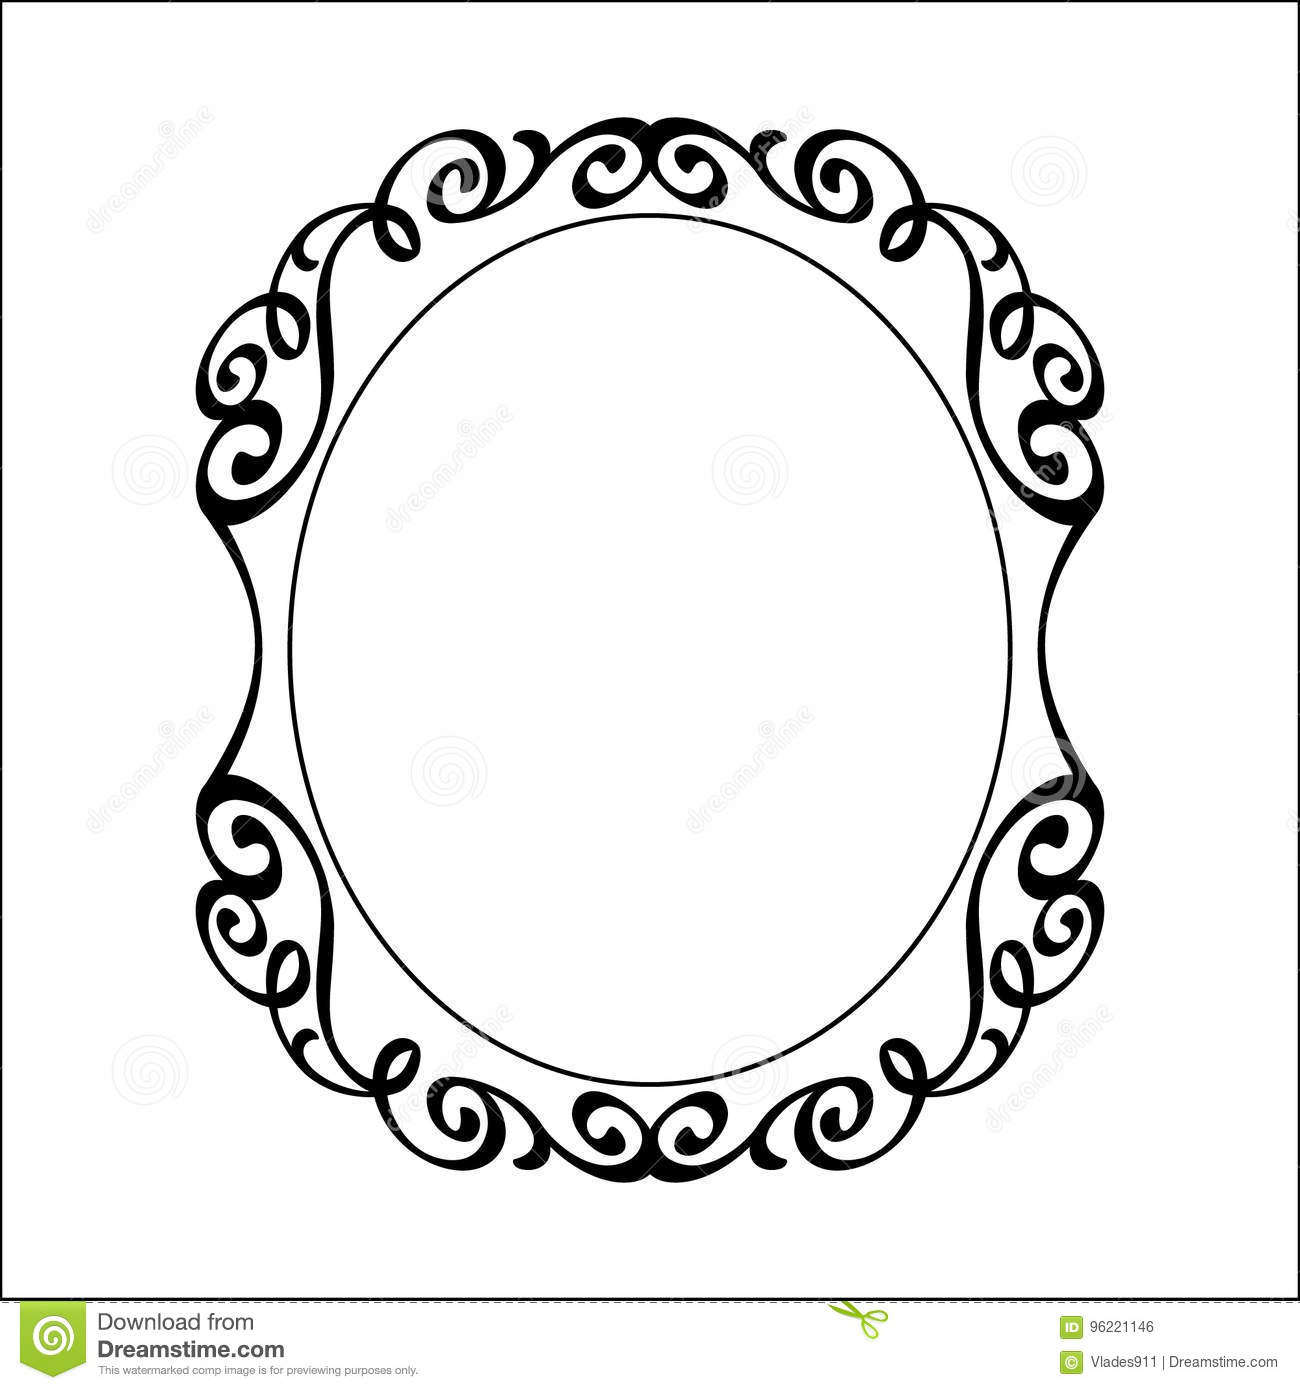 Download Decorative Vintage Frame Vector IllustrationBlack Stock